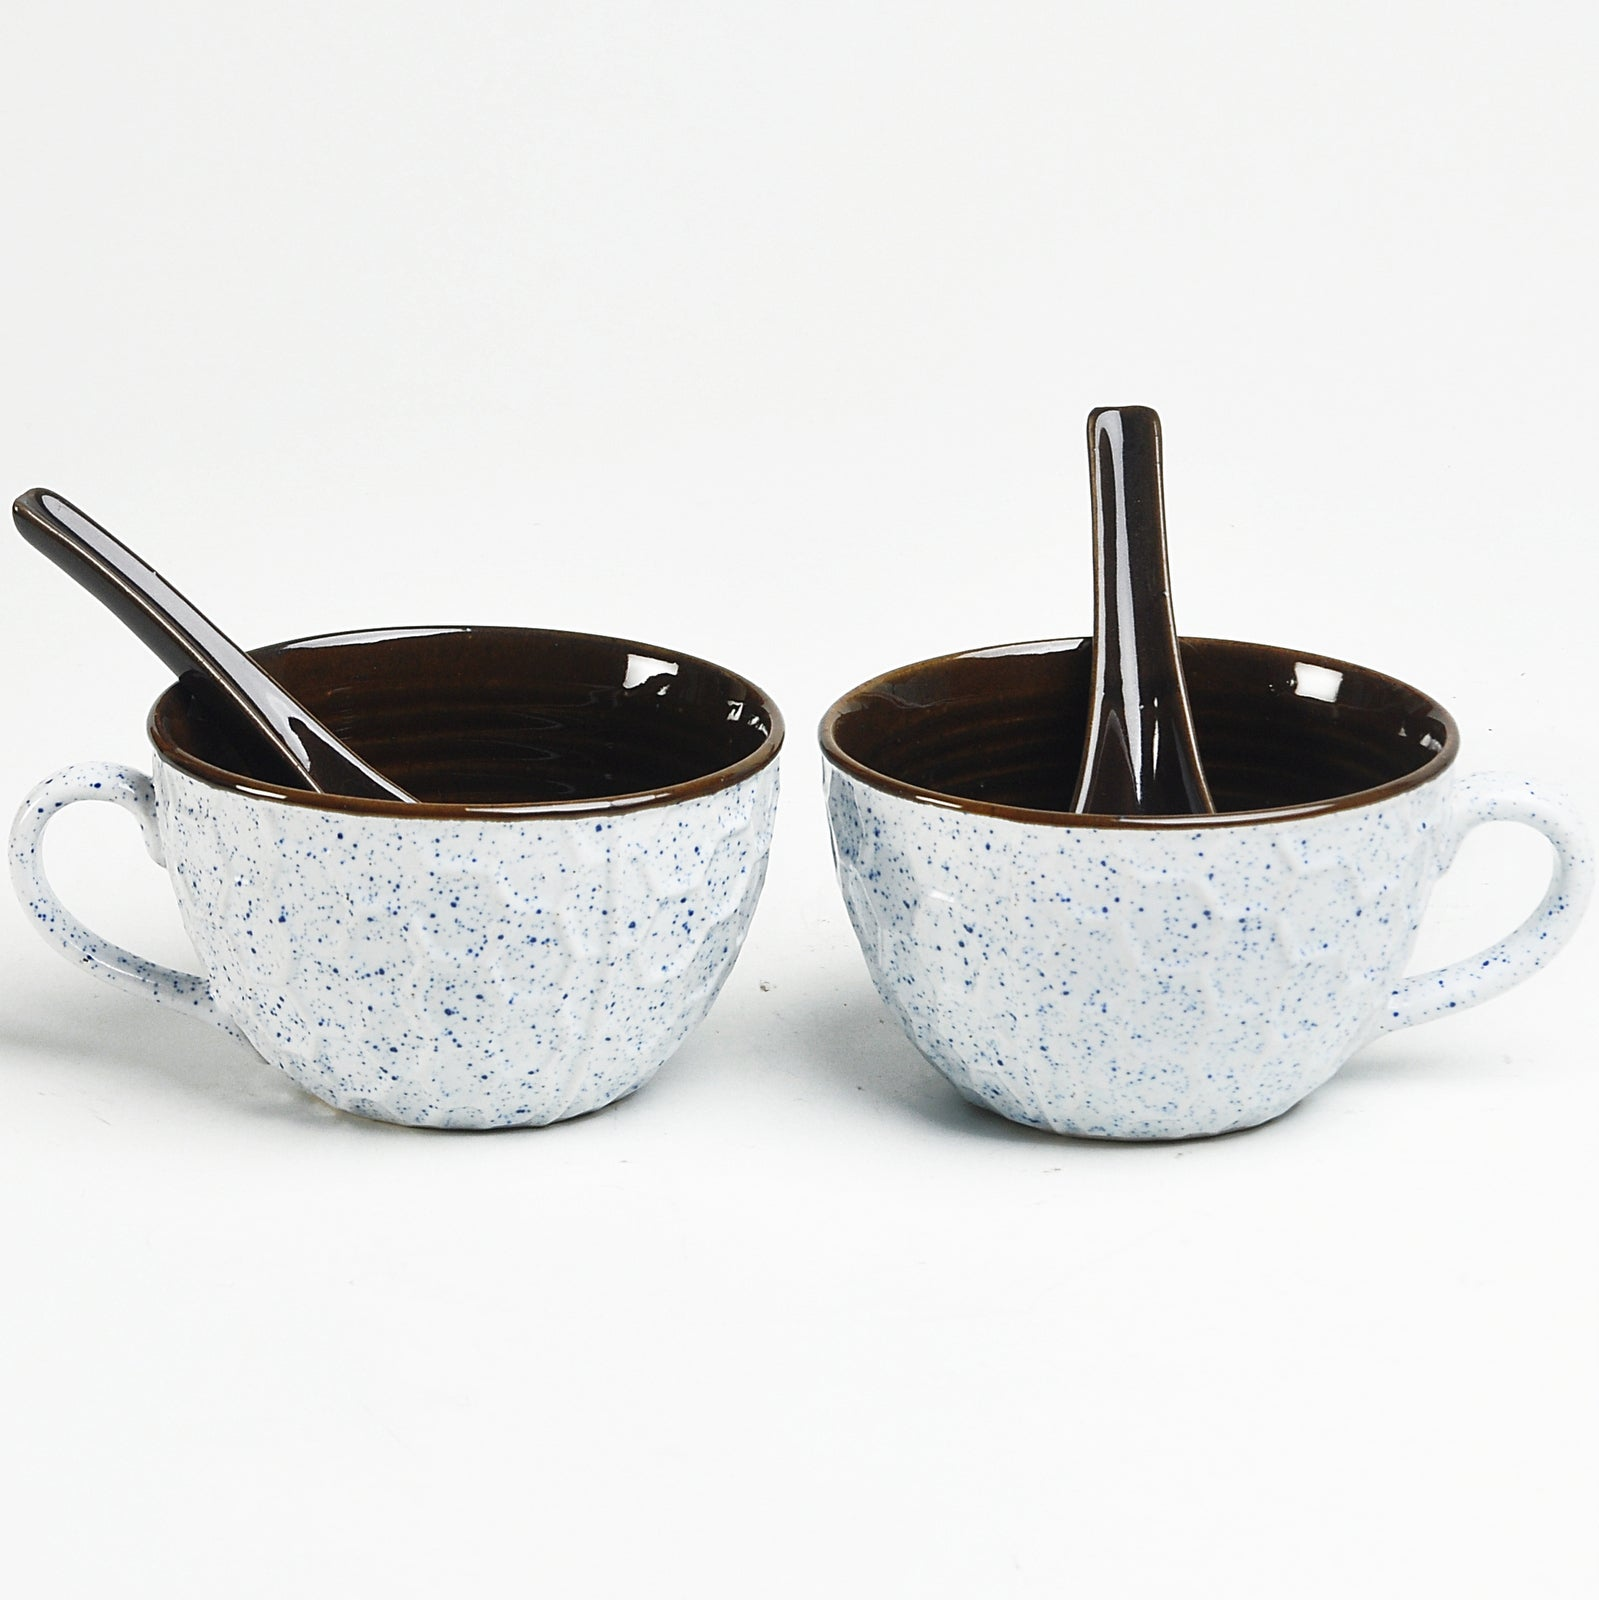 white-n-black-timantti-soup-bowls-dec5497